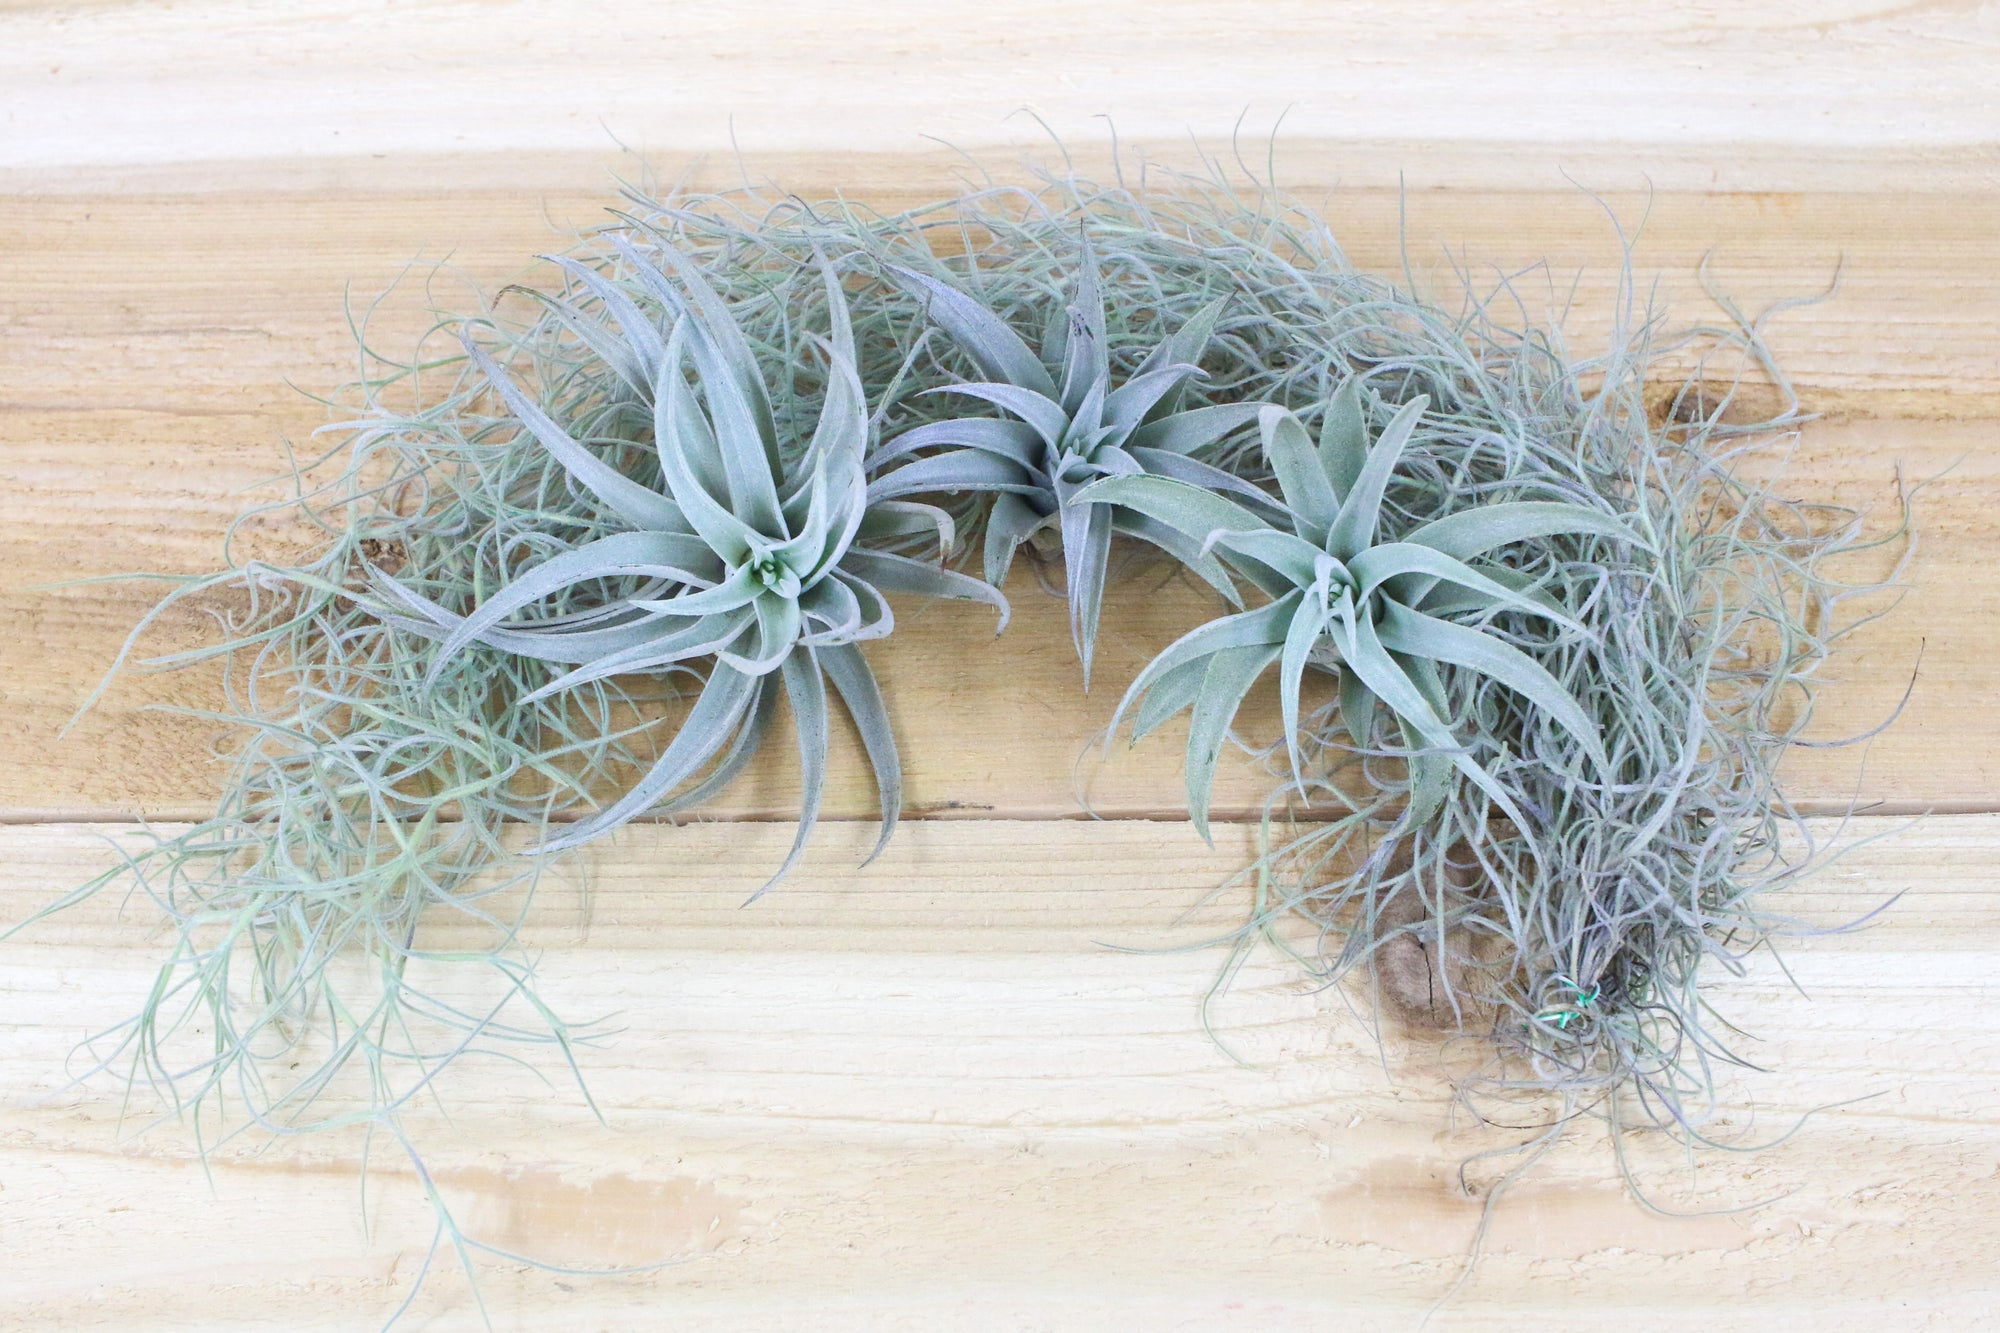 Sale: 25% Off [3 Pack with Moss] Harrisii Air Plants on Bed of Spanish Moss